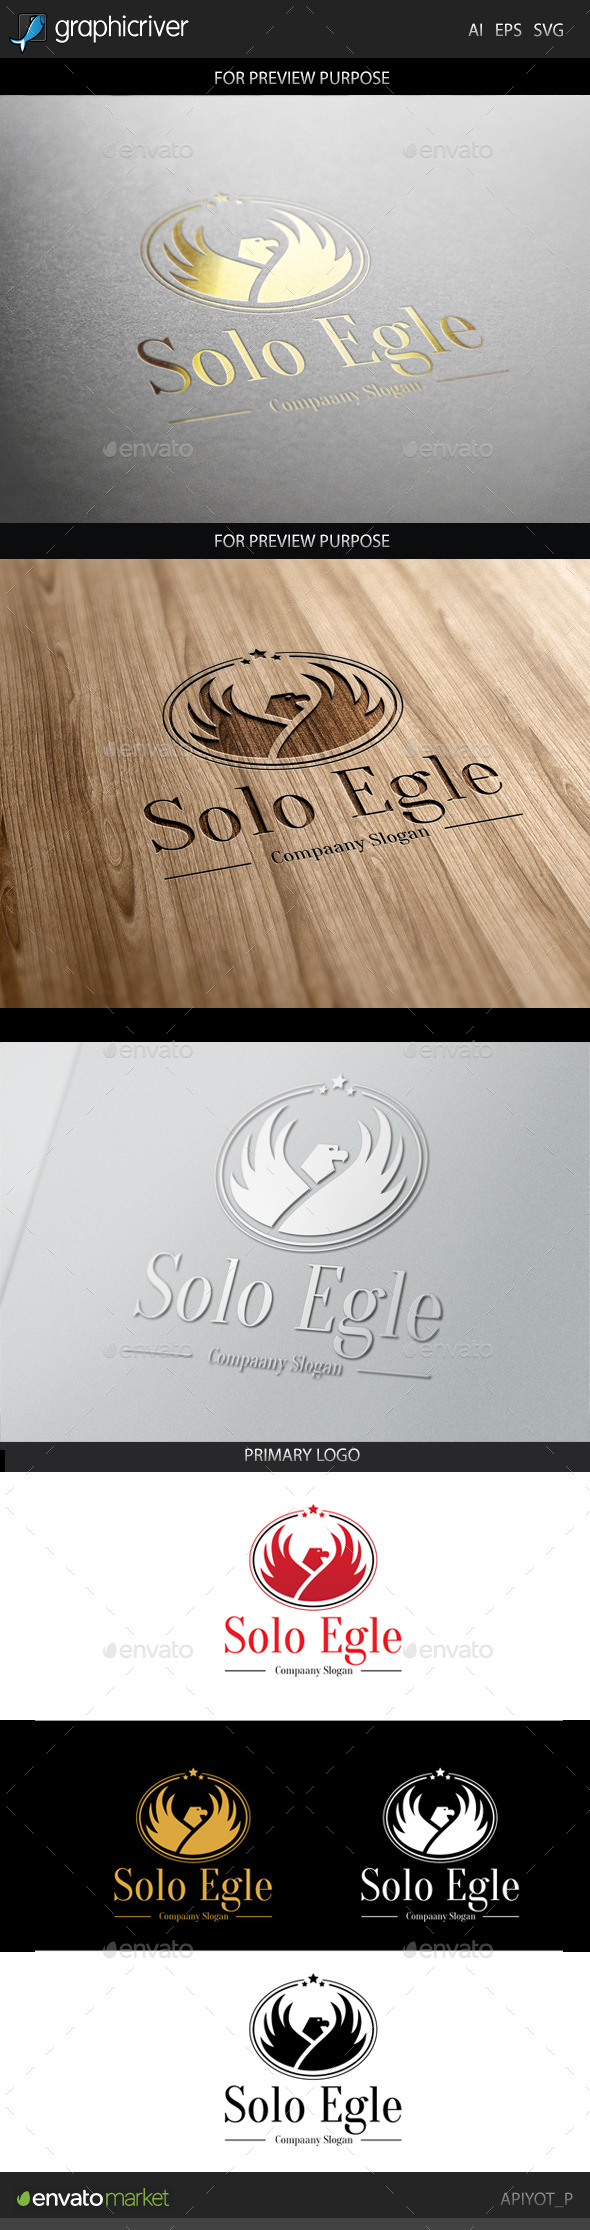 GraphicRiver Solo Eagle Logo 8856813